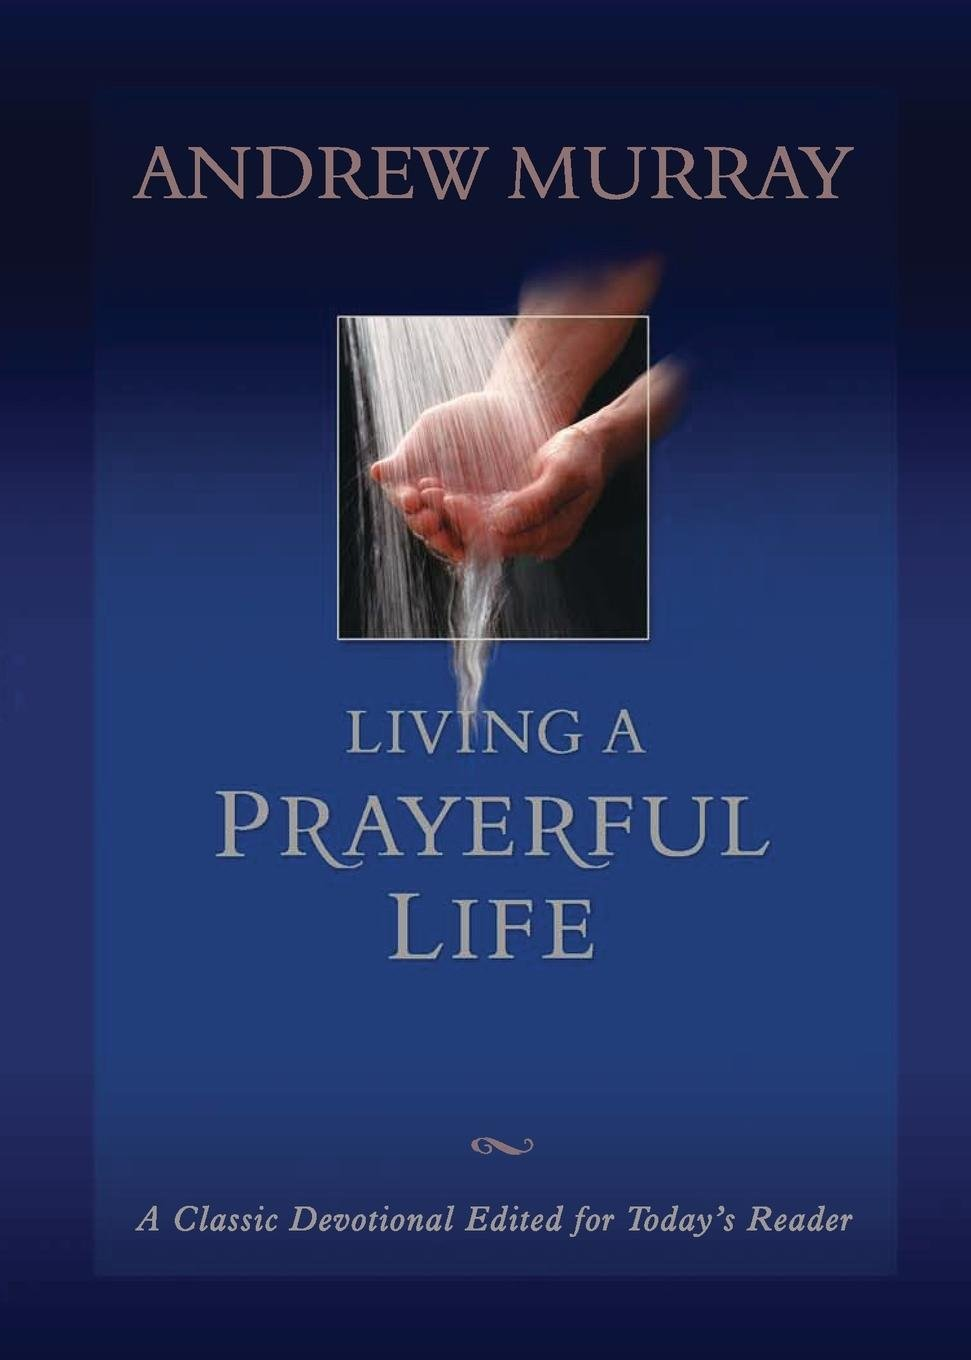 Tips To Help You With A Your Journey to a Prayerful Life - by Barbara Schutt (Paperback) Purchase